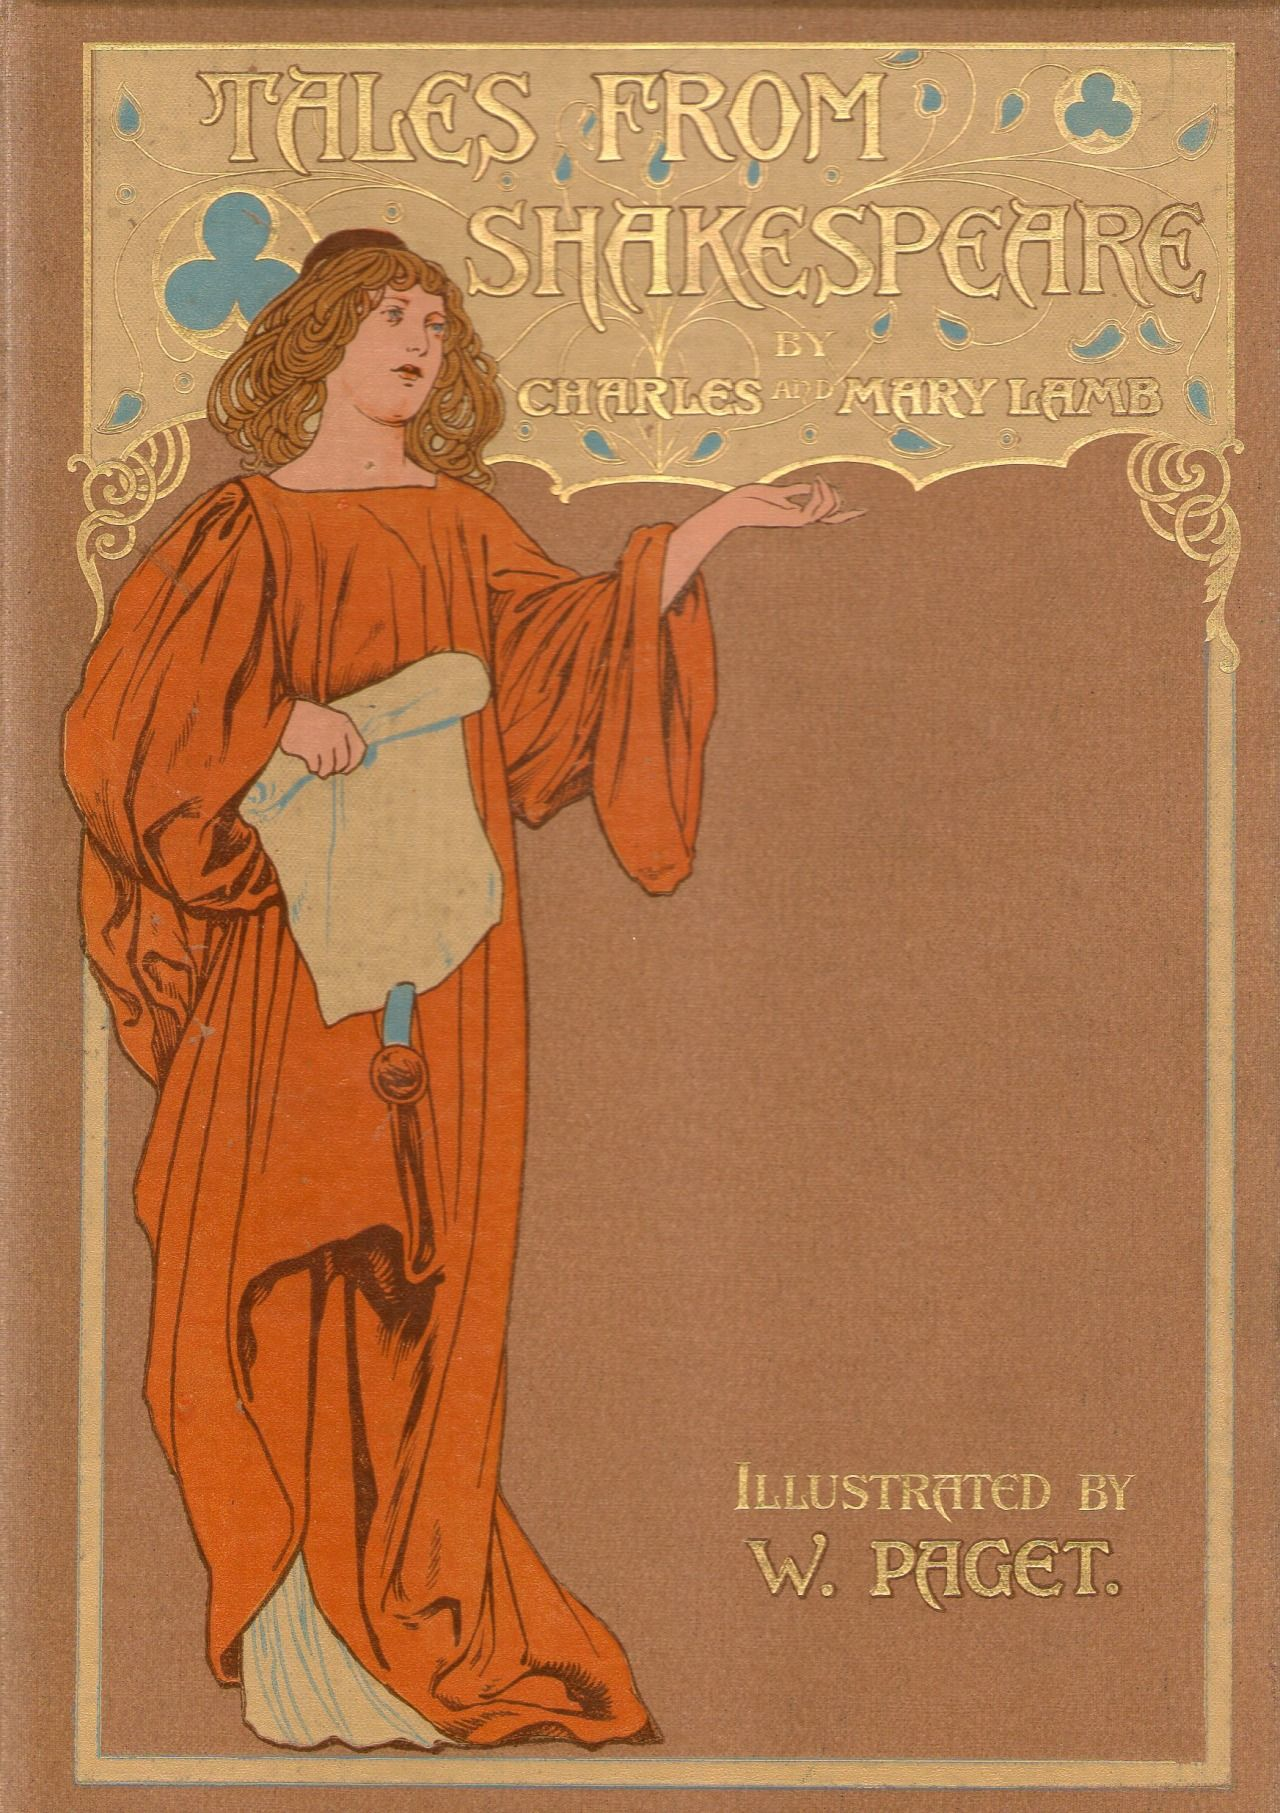 Tales from Shakespeare by Charles and Mary Lamb, illustrated by W. Paget, ca.1890s